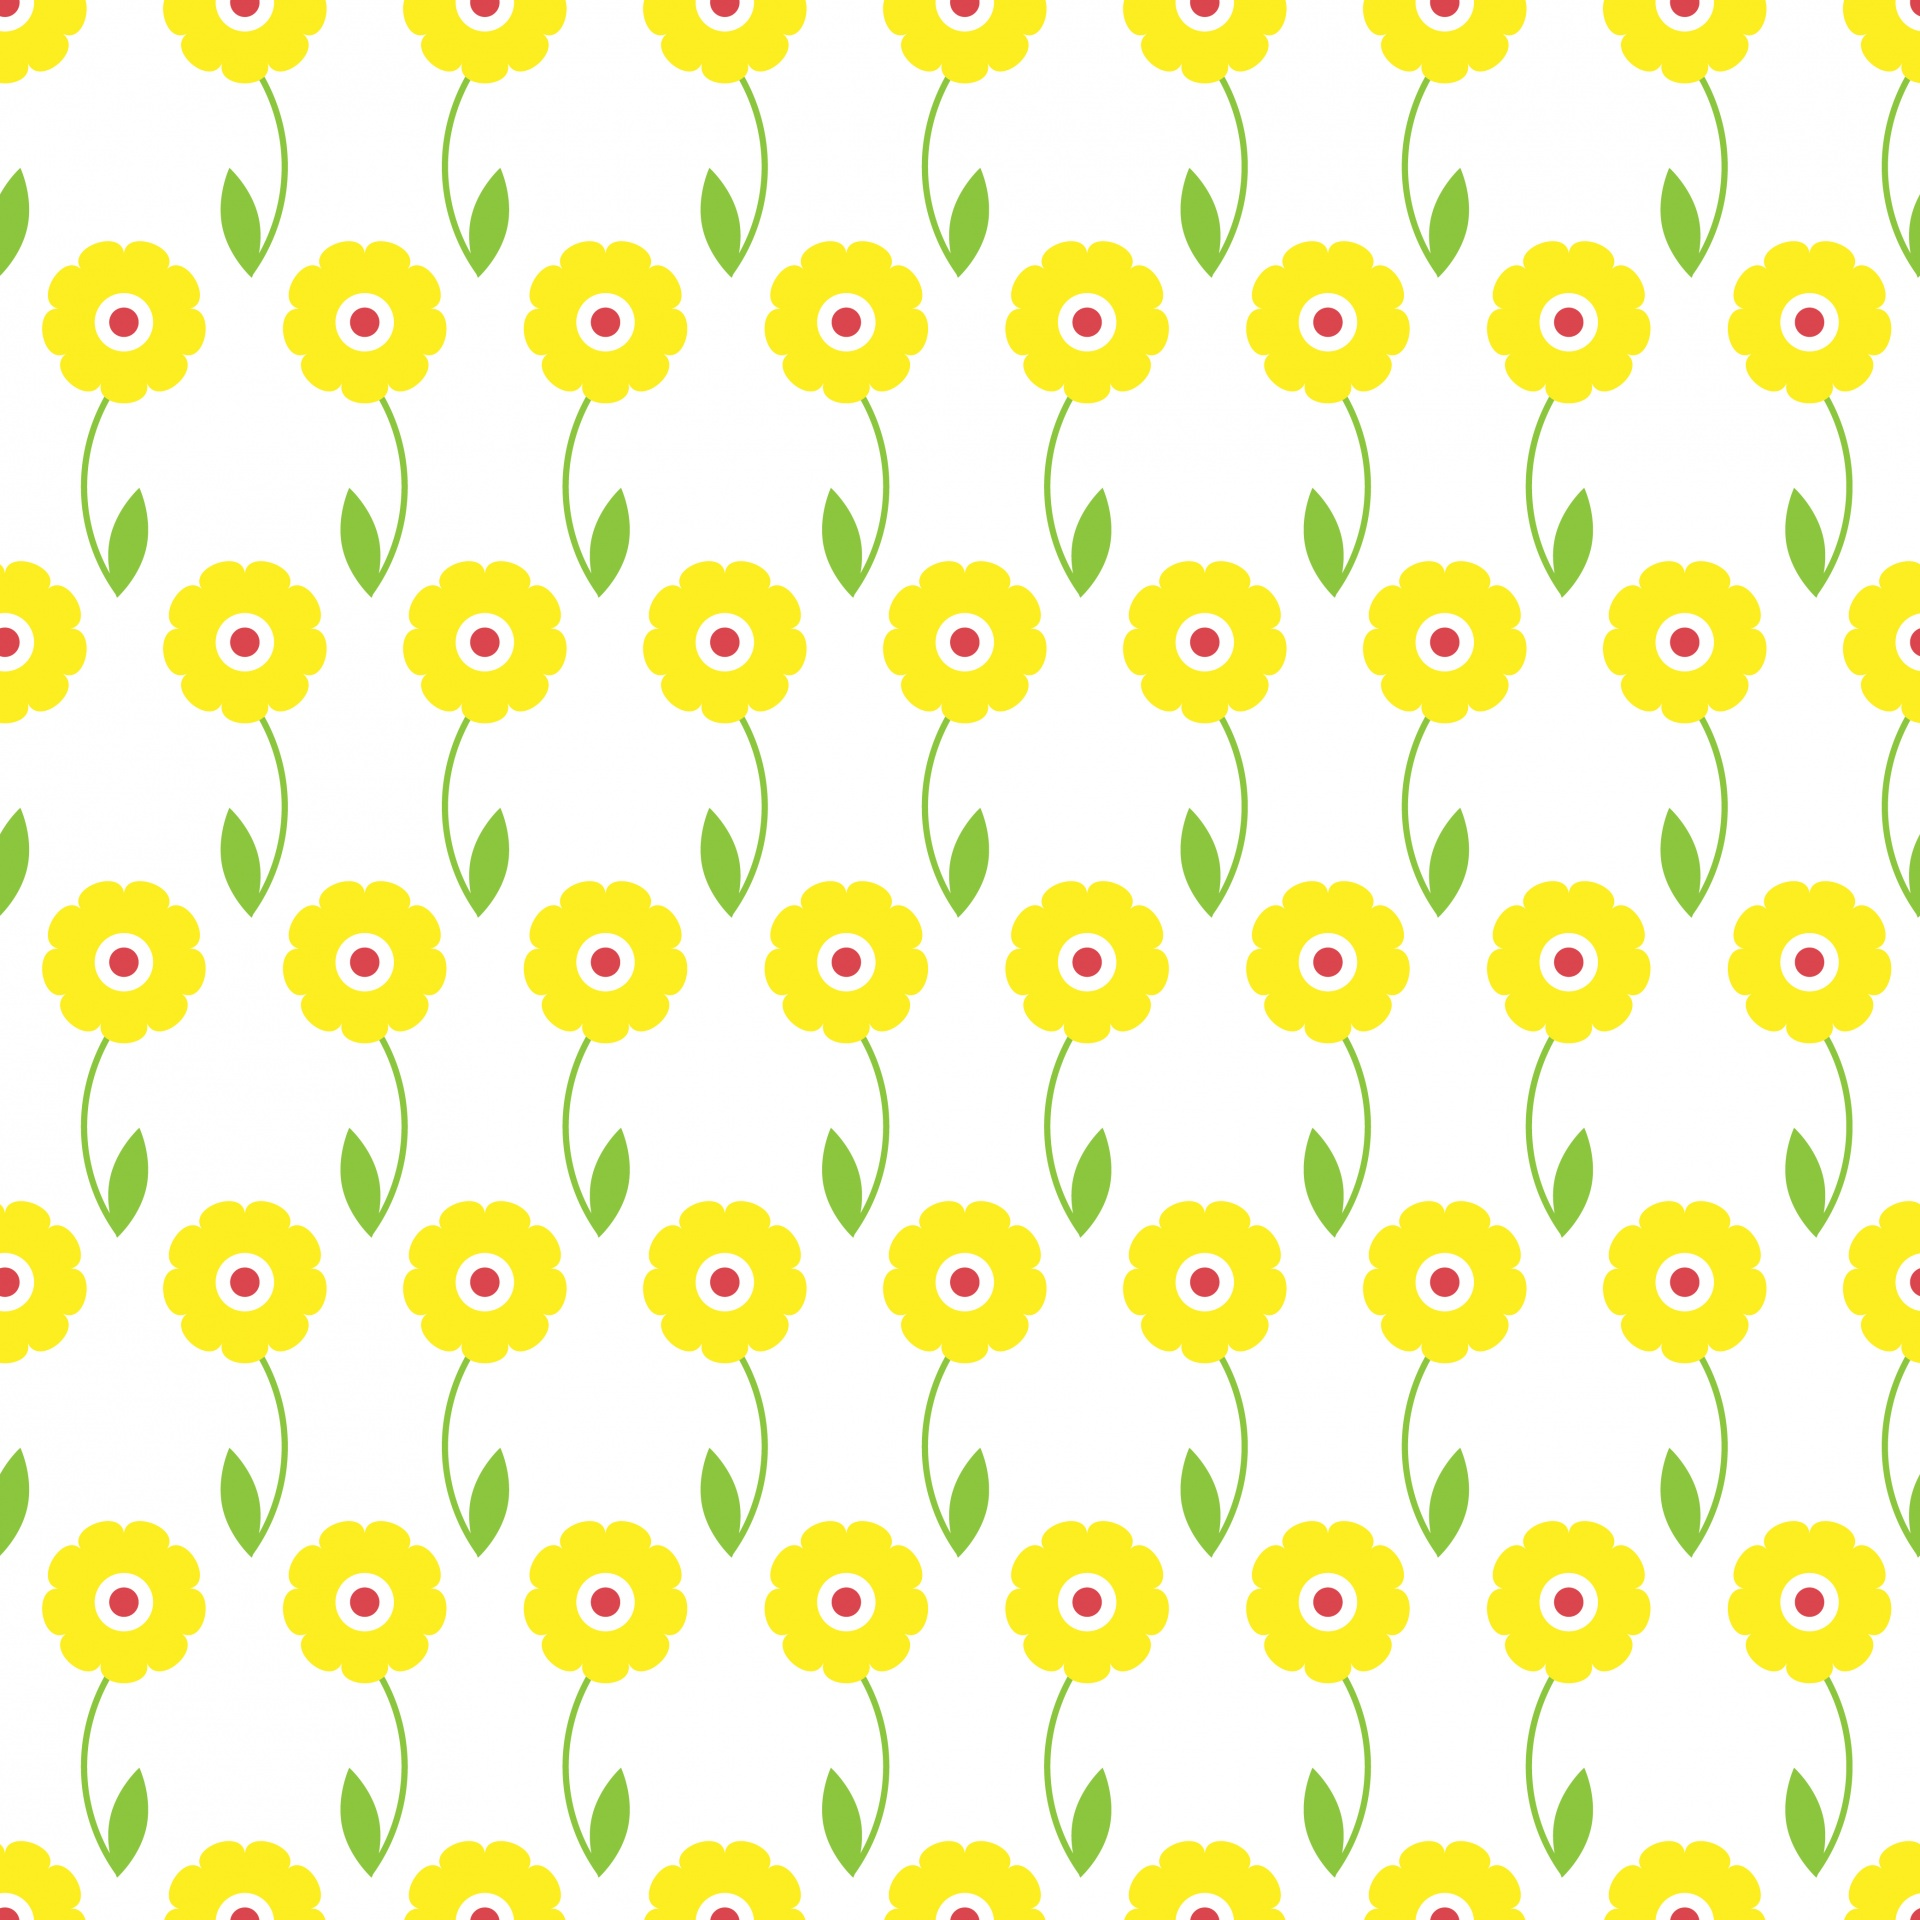 Floral Flowers Flower Daisy Daisies Free Image From Needpix Com